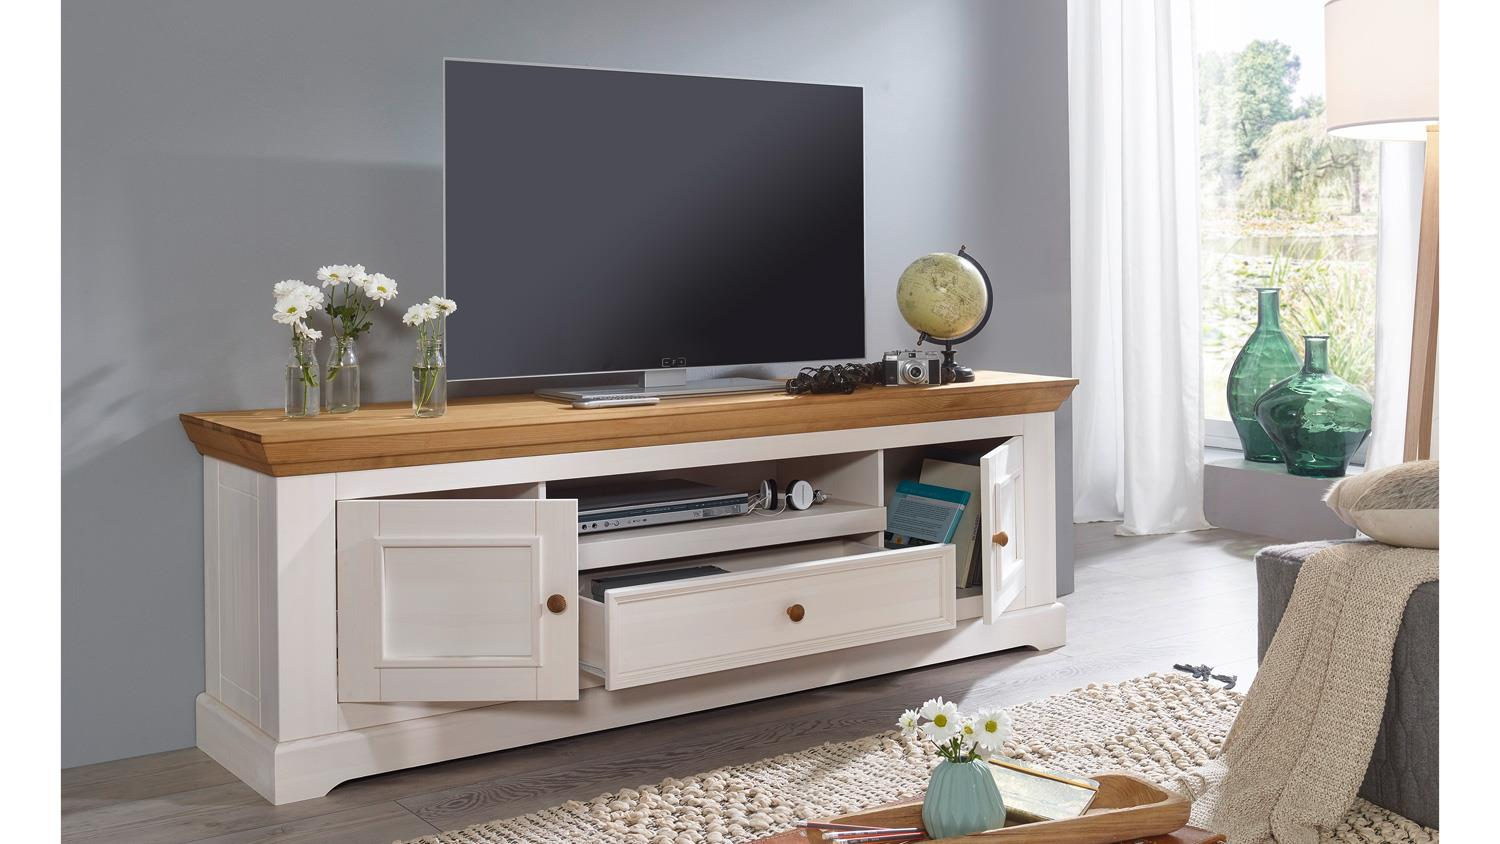 lowboard 1 glora tv board kiefer massiv wei gewachst eiche landhaus. Black Bedroom Furniture Sets. Home Design Ideas